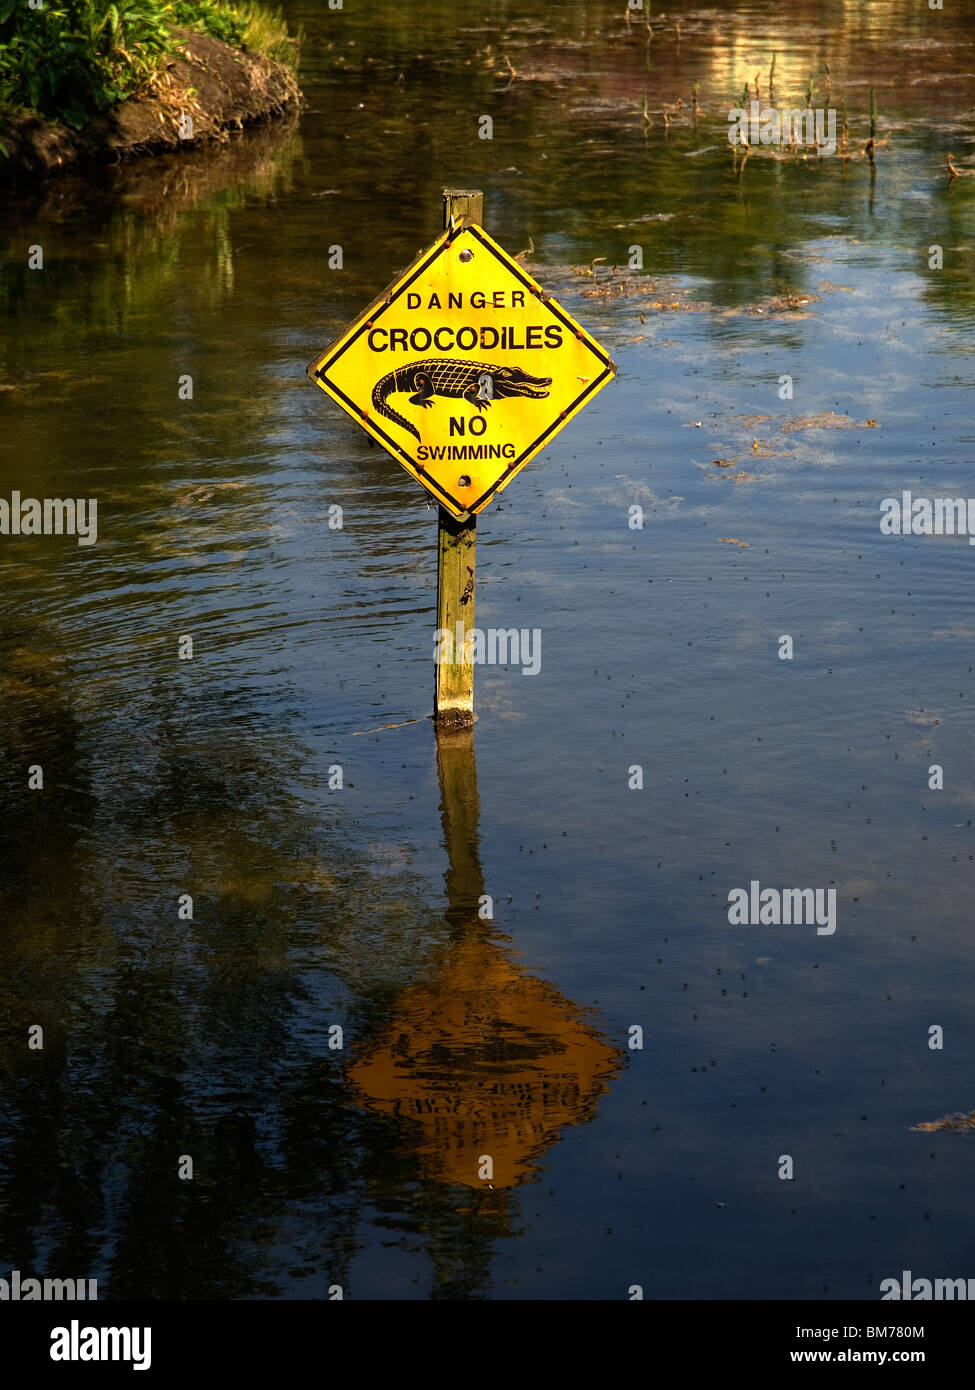 A sign in an English lake saying Danger Crocodiles No Swimming - Stock Image